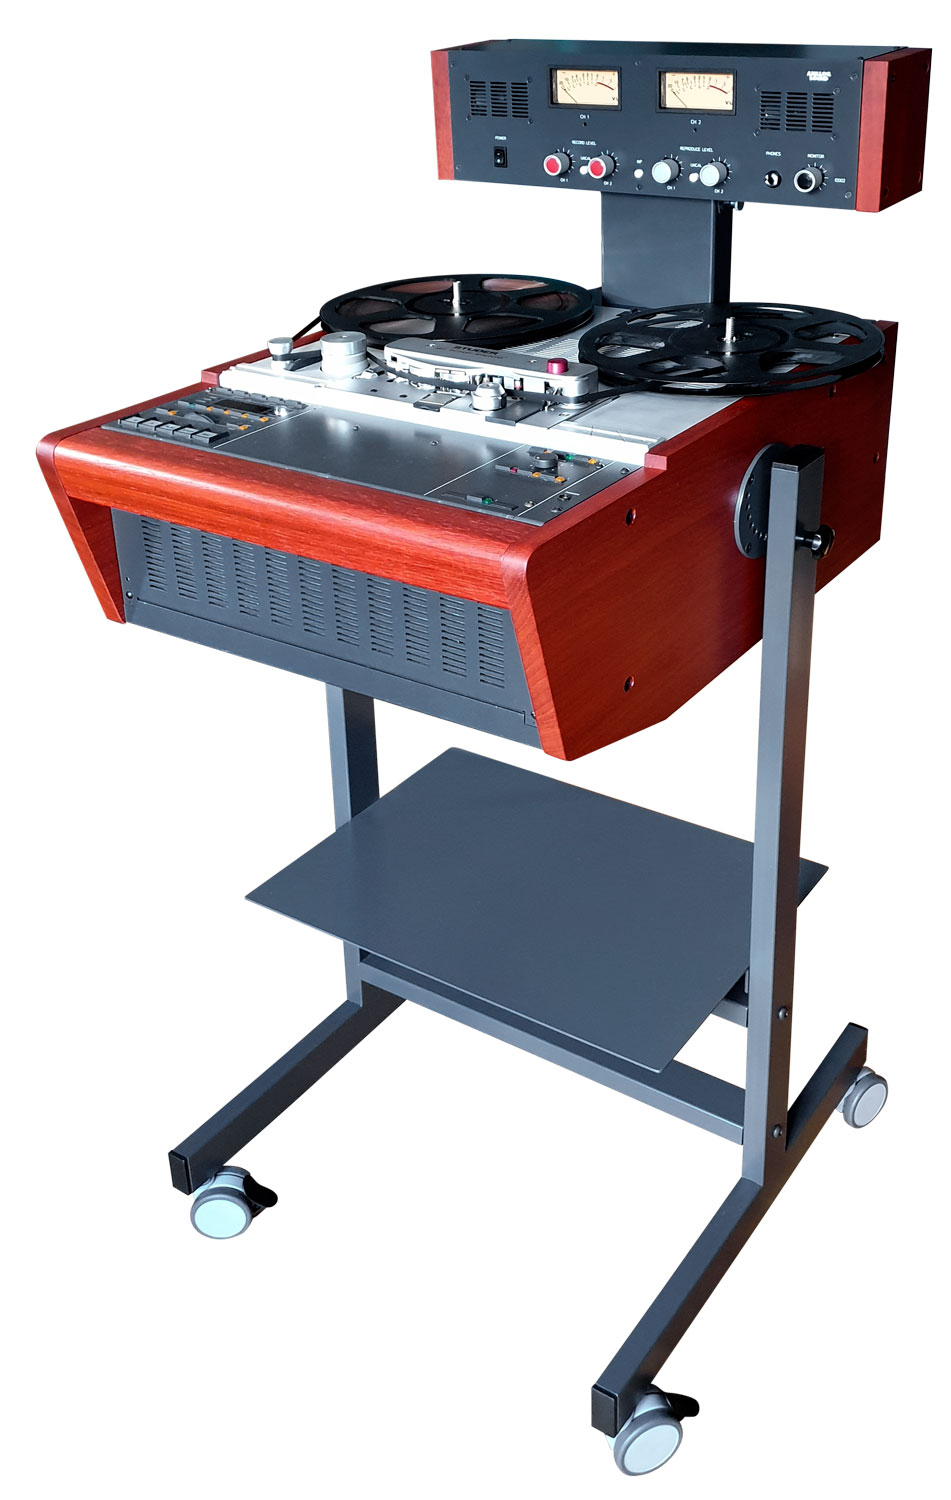 Custom Made Stand Trolley with Meter Bridge for Studer A807, A810, A67, B67 etc. Reel to Reel Recorders